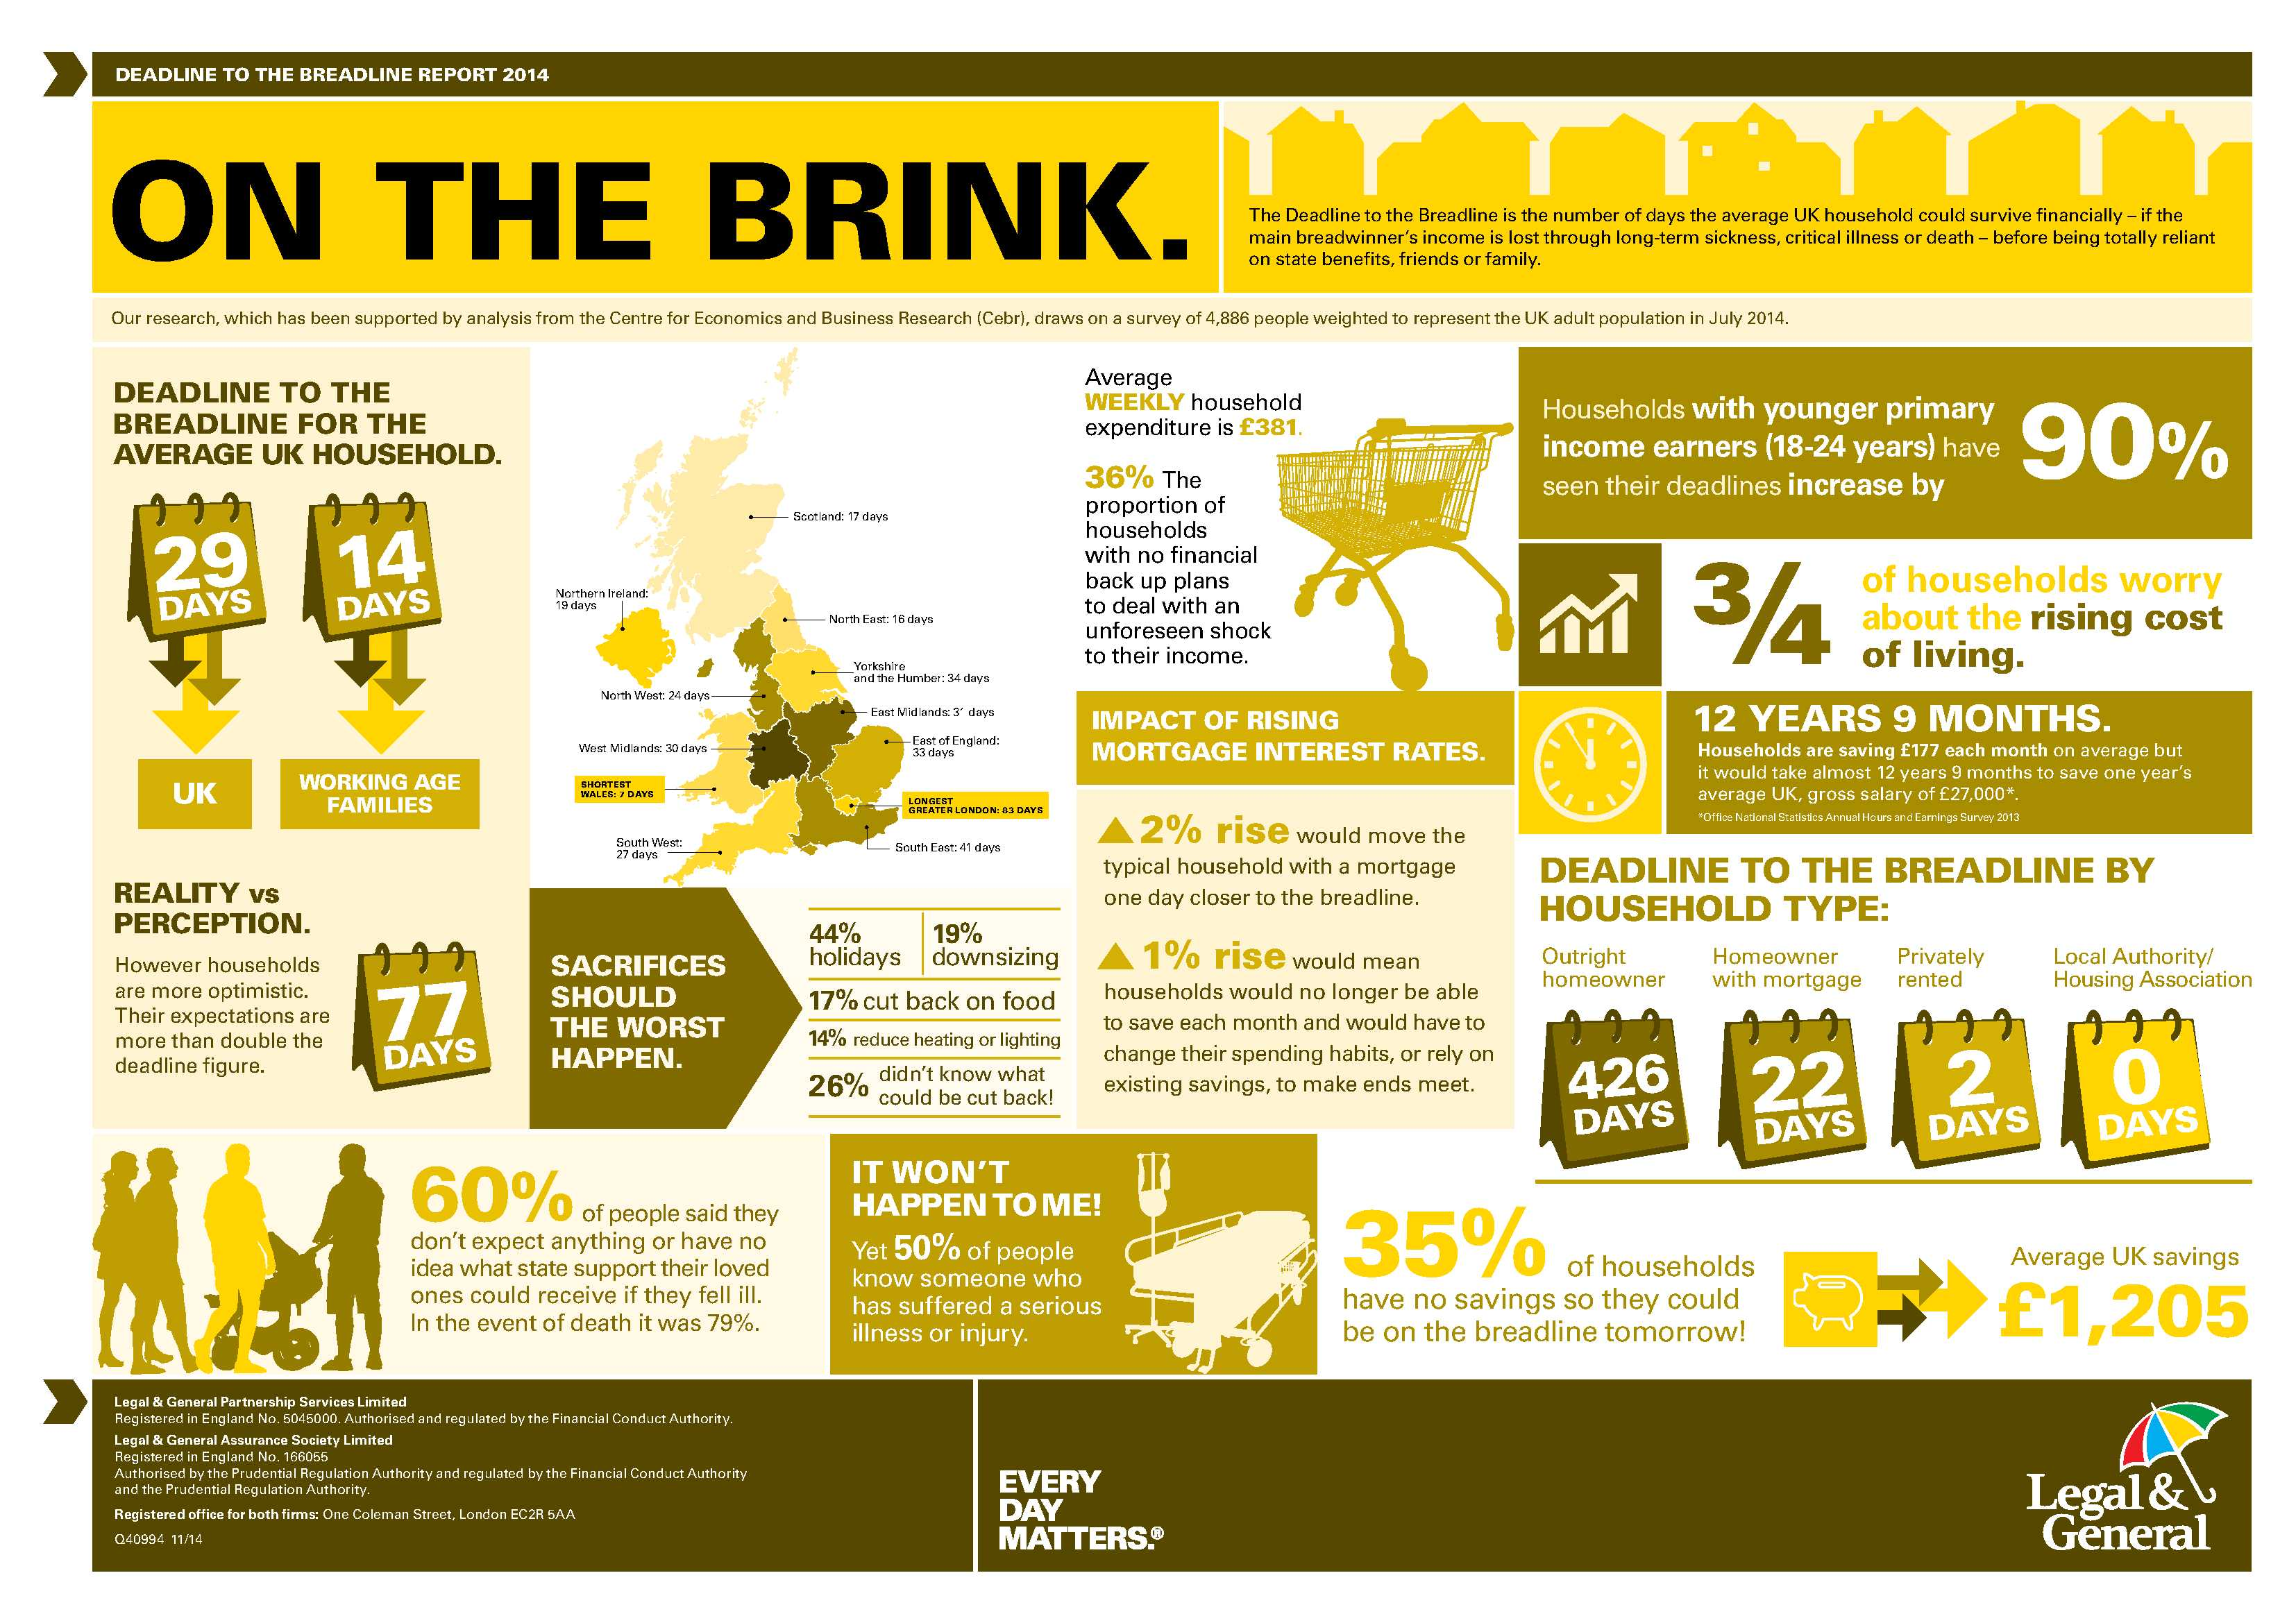 Deadline to the breadline infographic